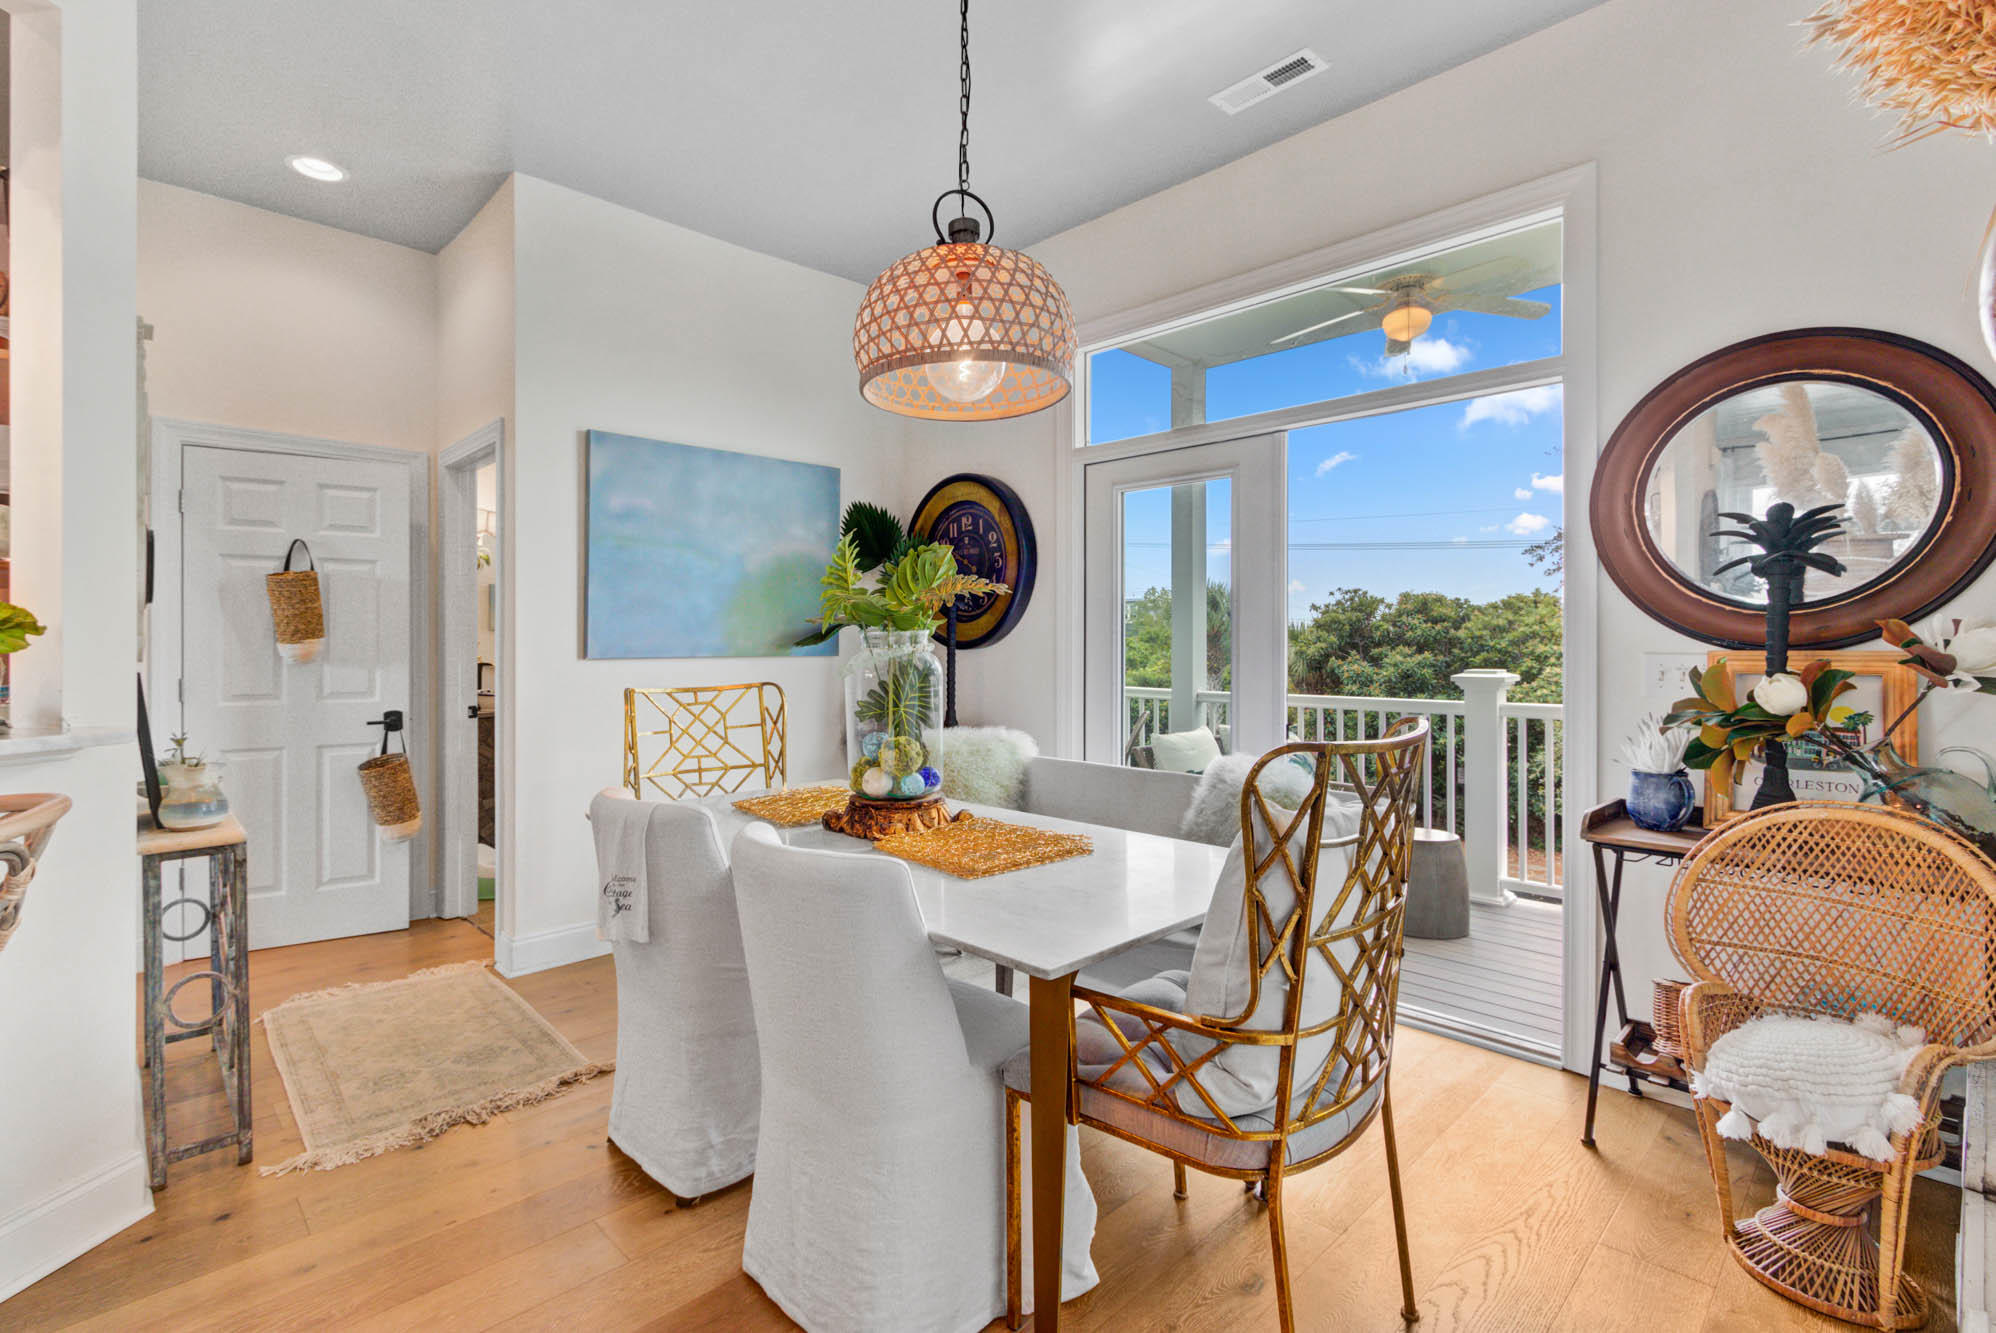 Folly Creek Place Homes For Sale - 2240 Folly, Folly Beach, SC - 21